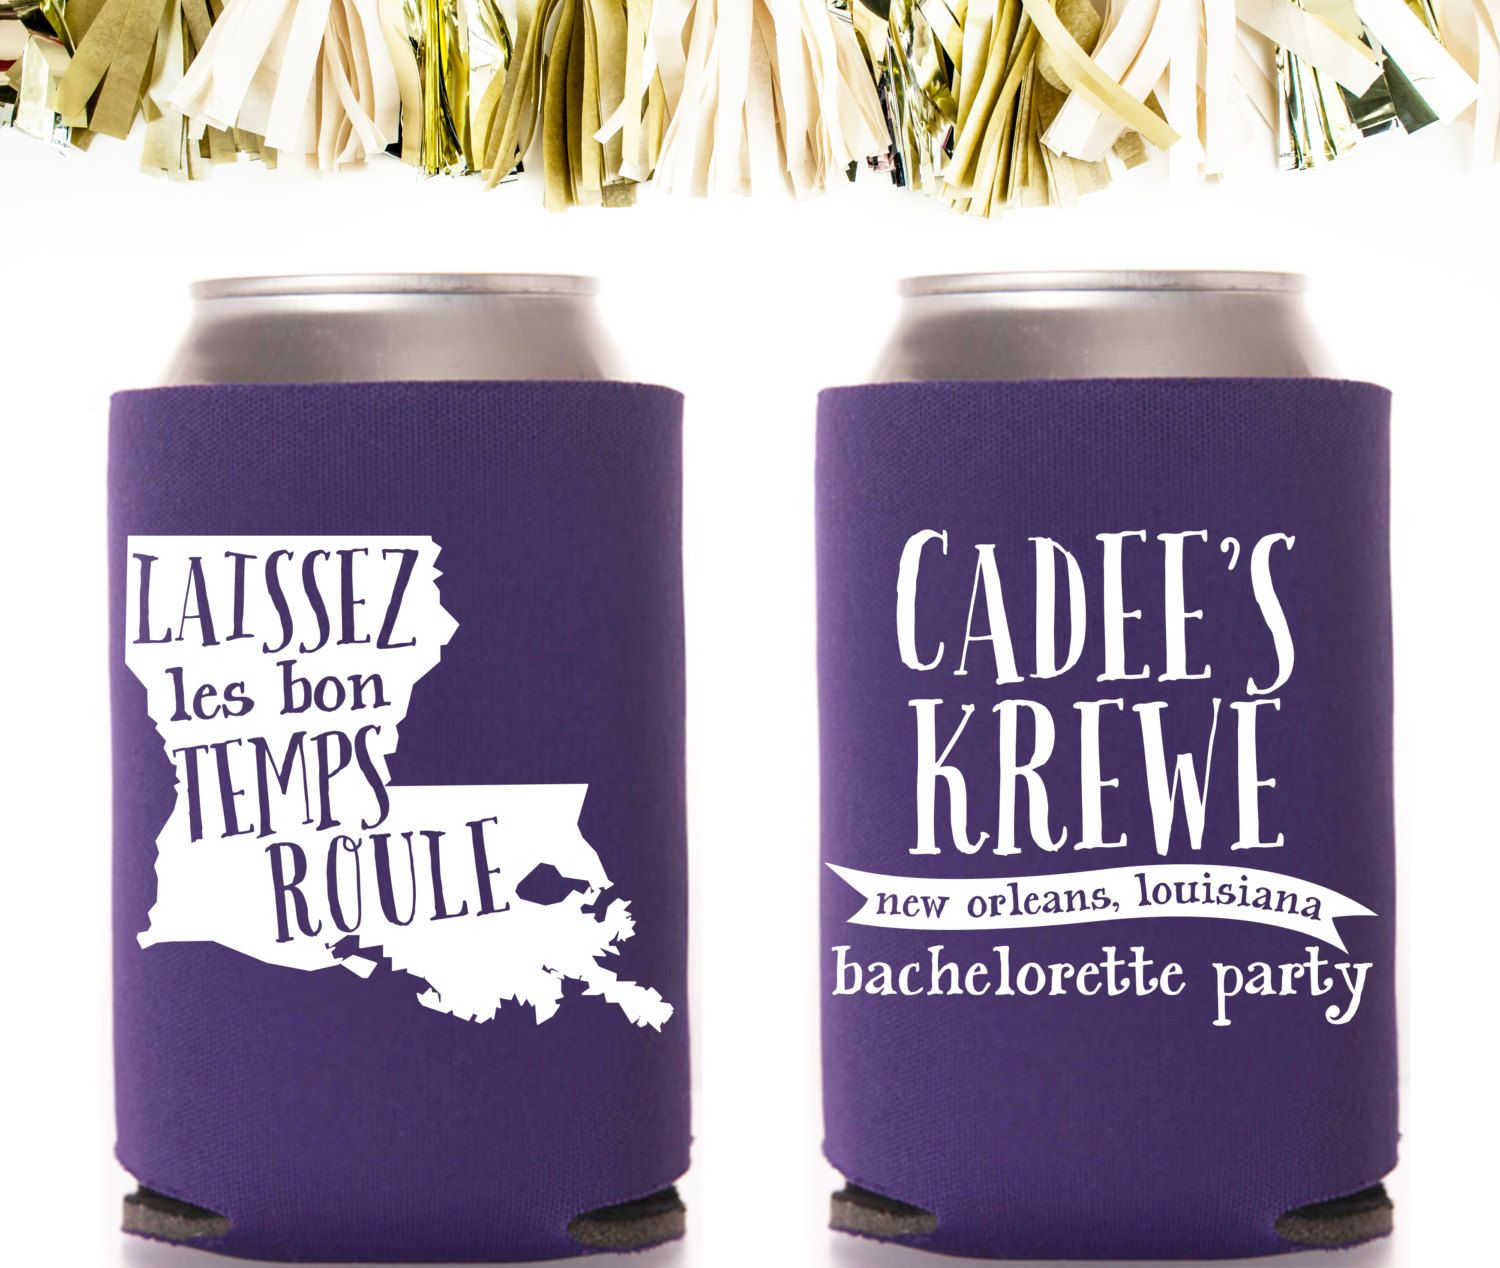 Let the good times roll new orleans bachelorette party for Bachelorette party ideas new orleans